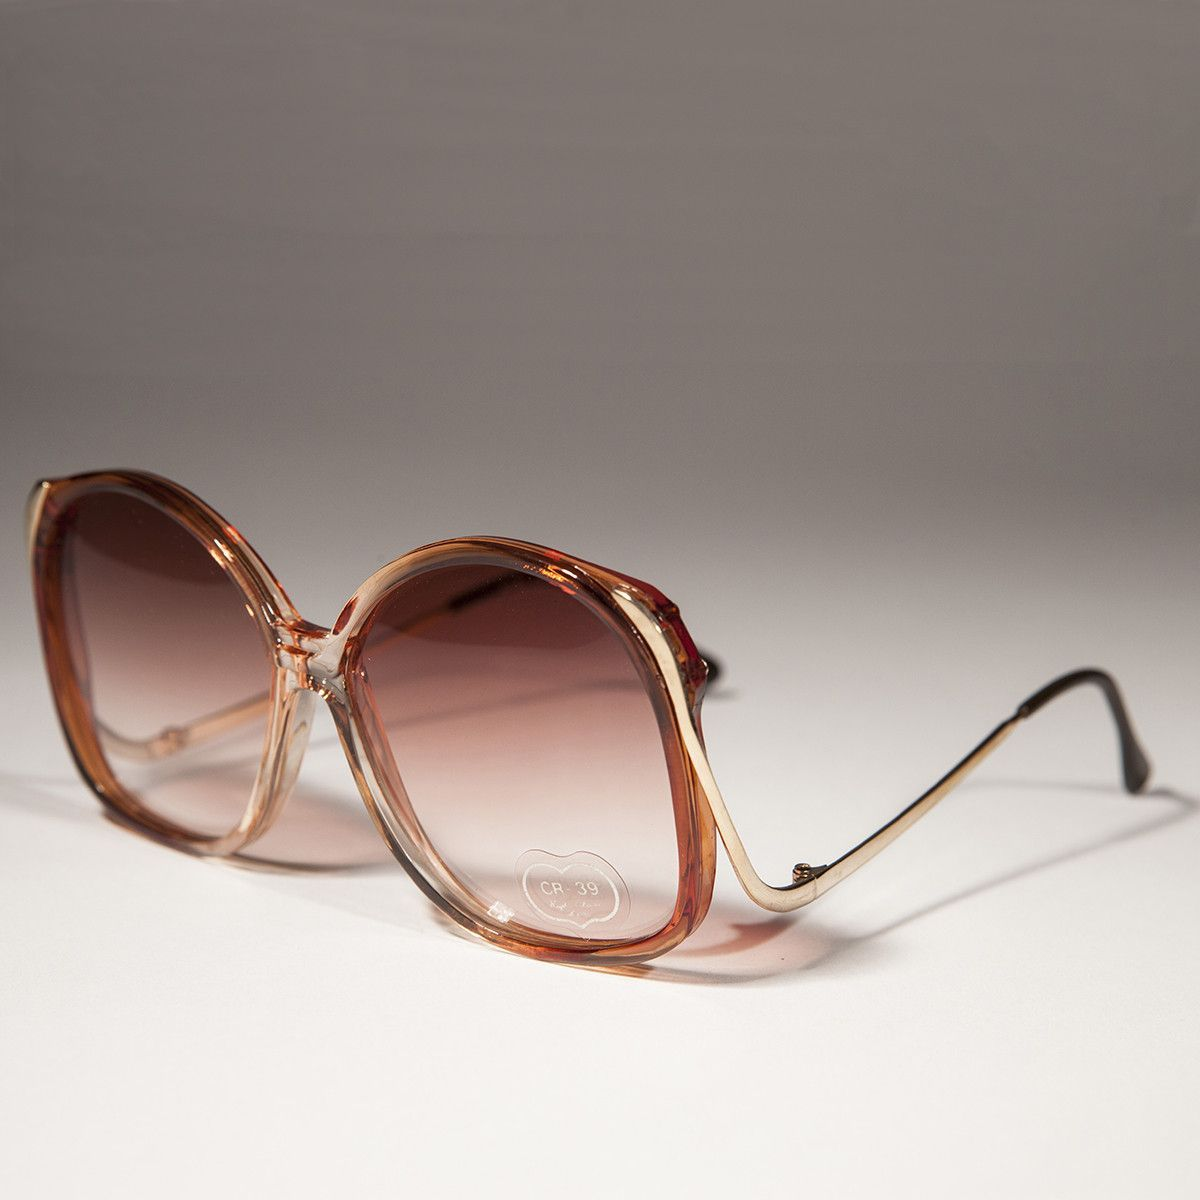 e5379cf774 Oversized Round Women s Vintage Sunglass with Colored Lenses - Lindsey